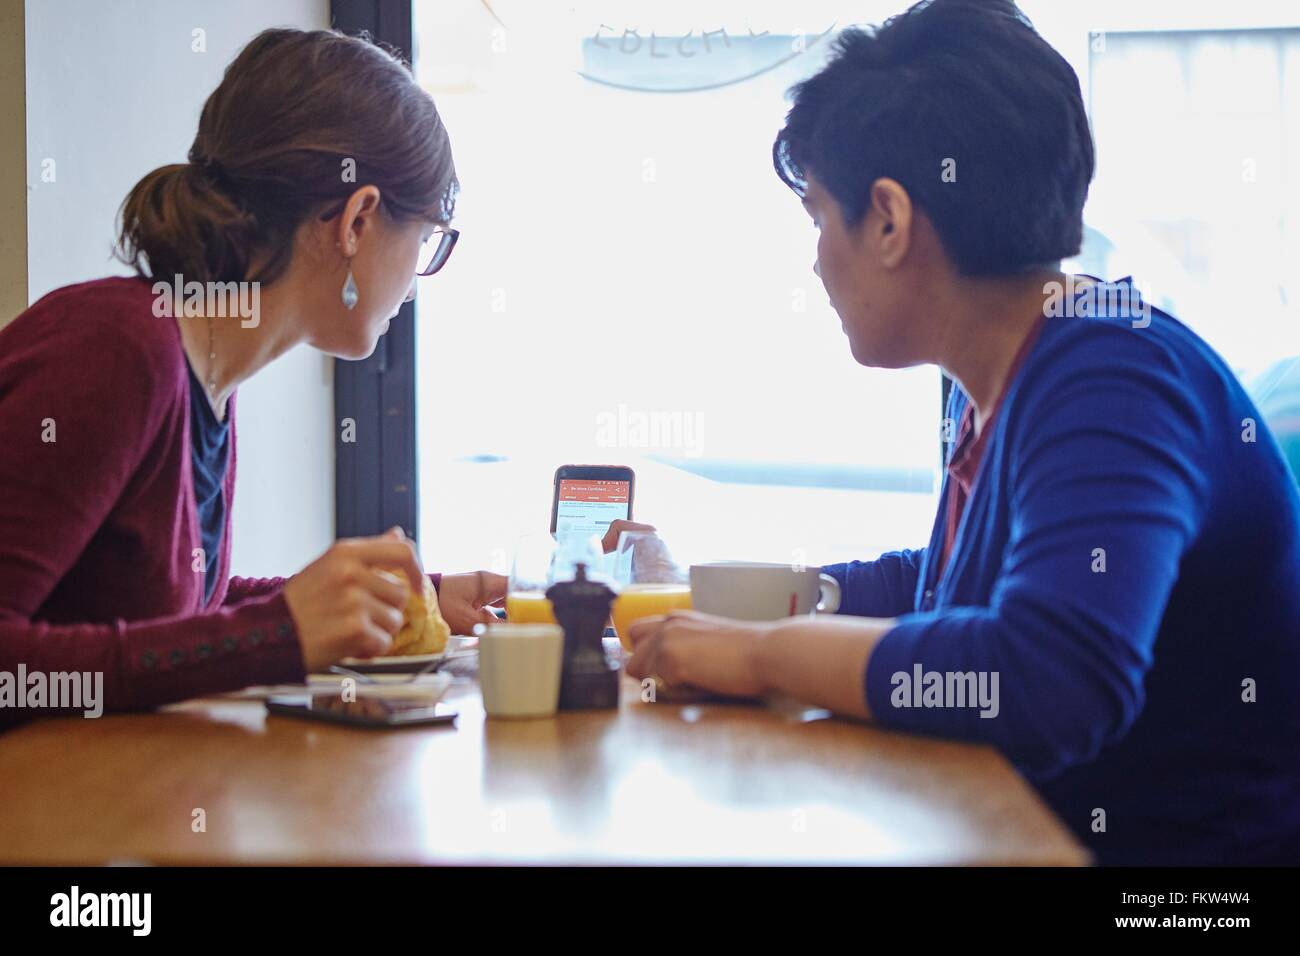 Two women reading smartphone text in restaurant - Stock Image